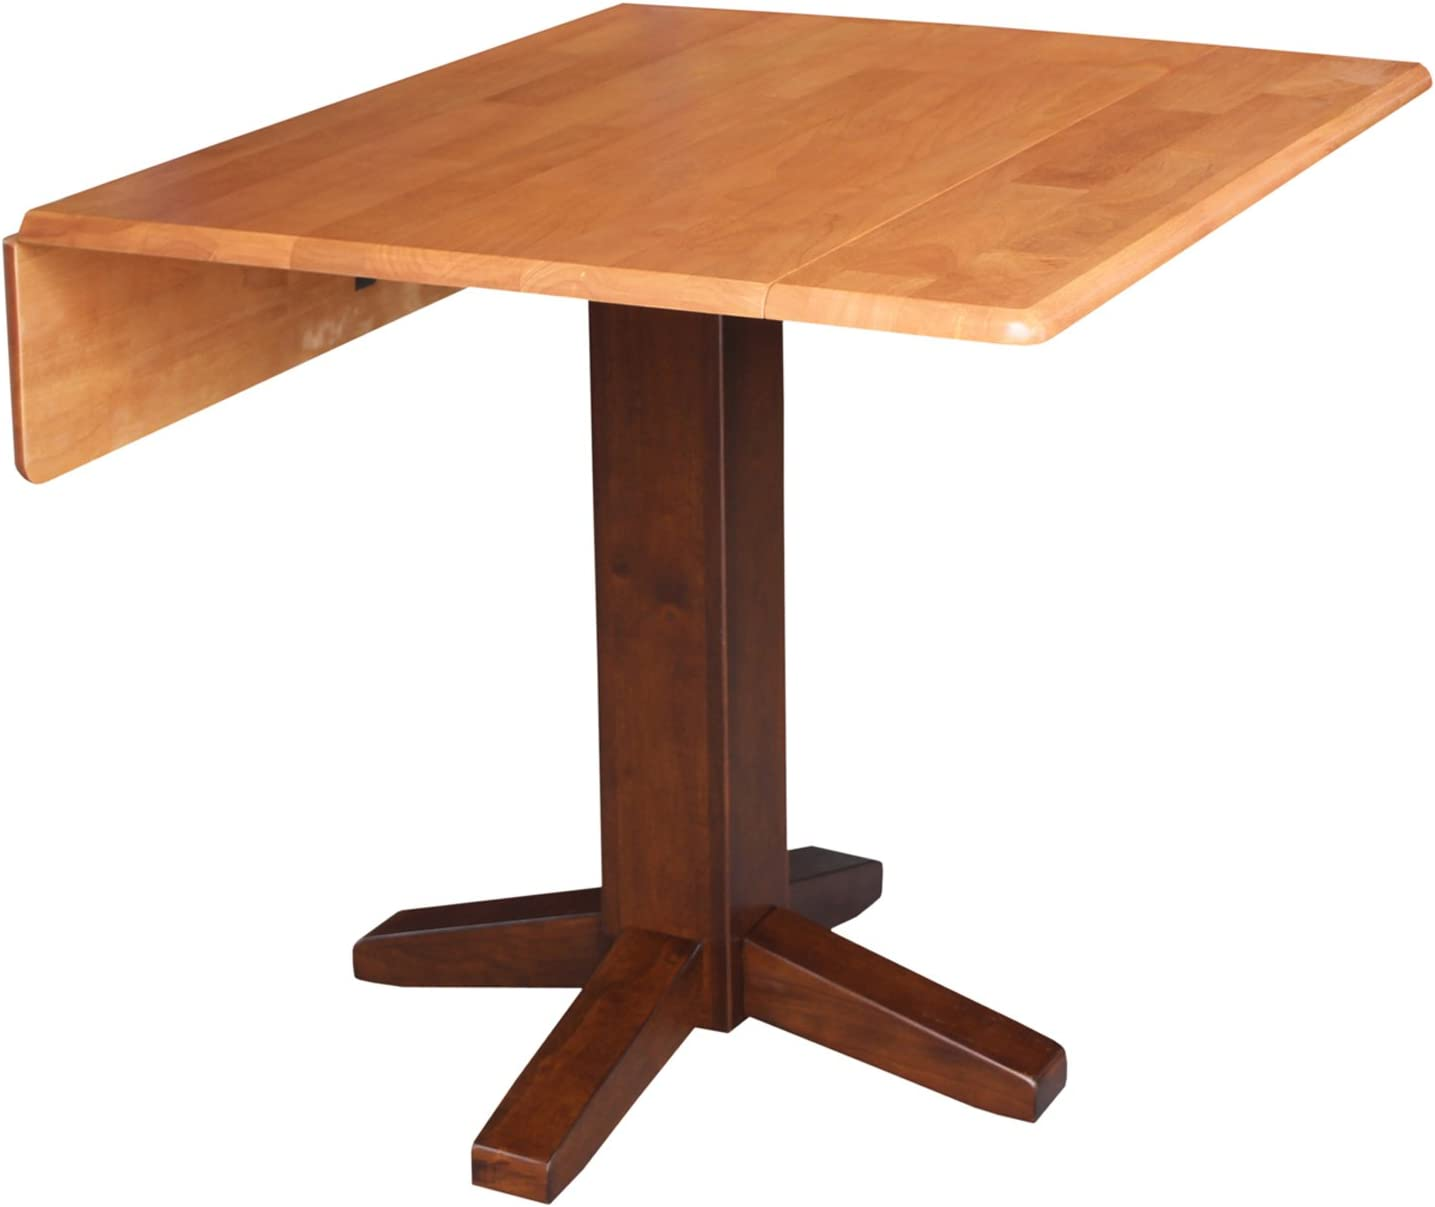 International Concepts Square Dual Drop Leaf Dining Table, 36 , Cinnamon Espresso